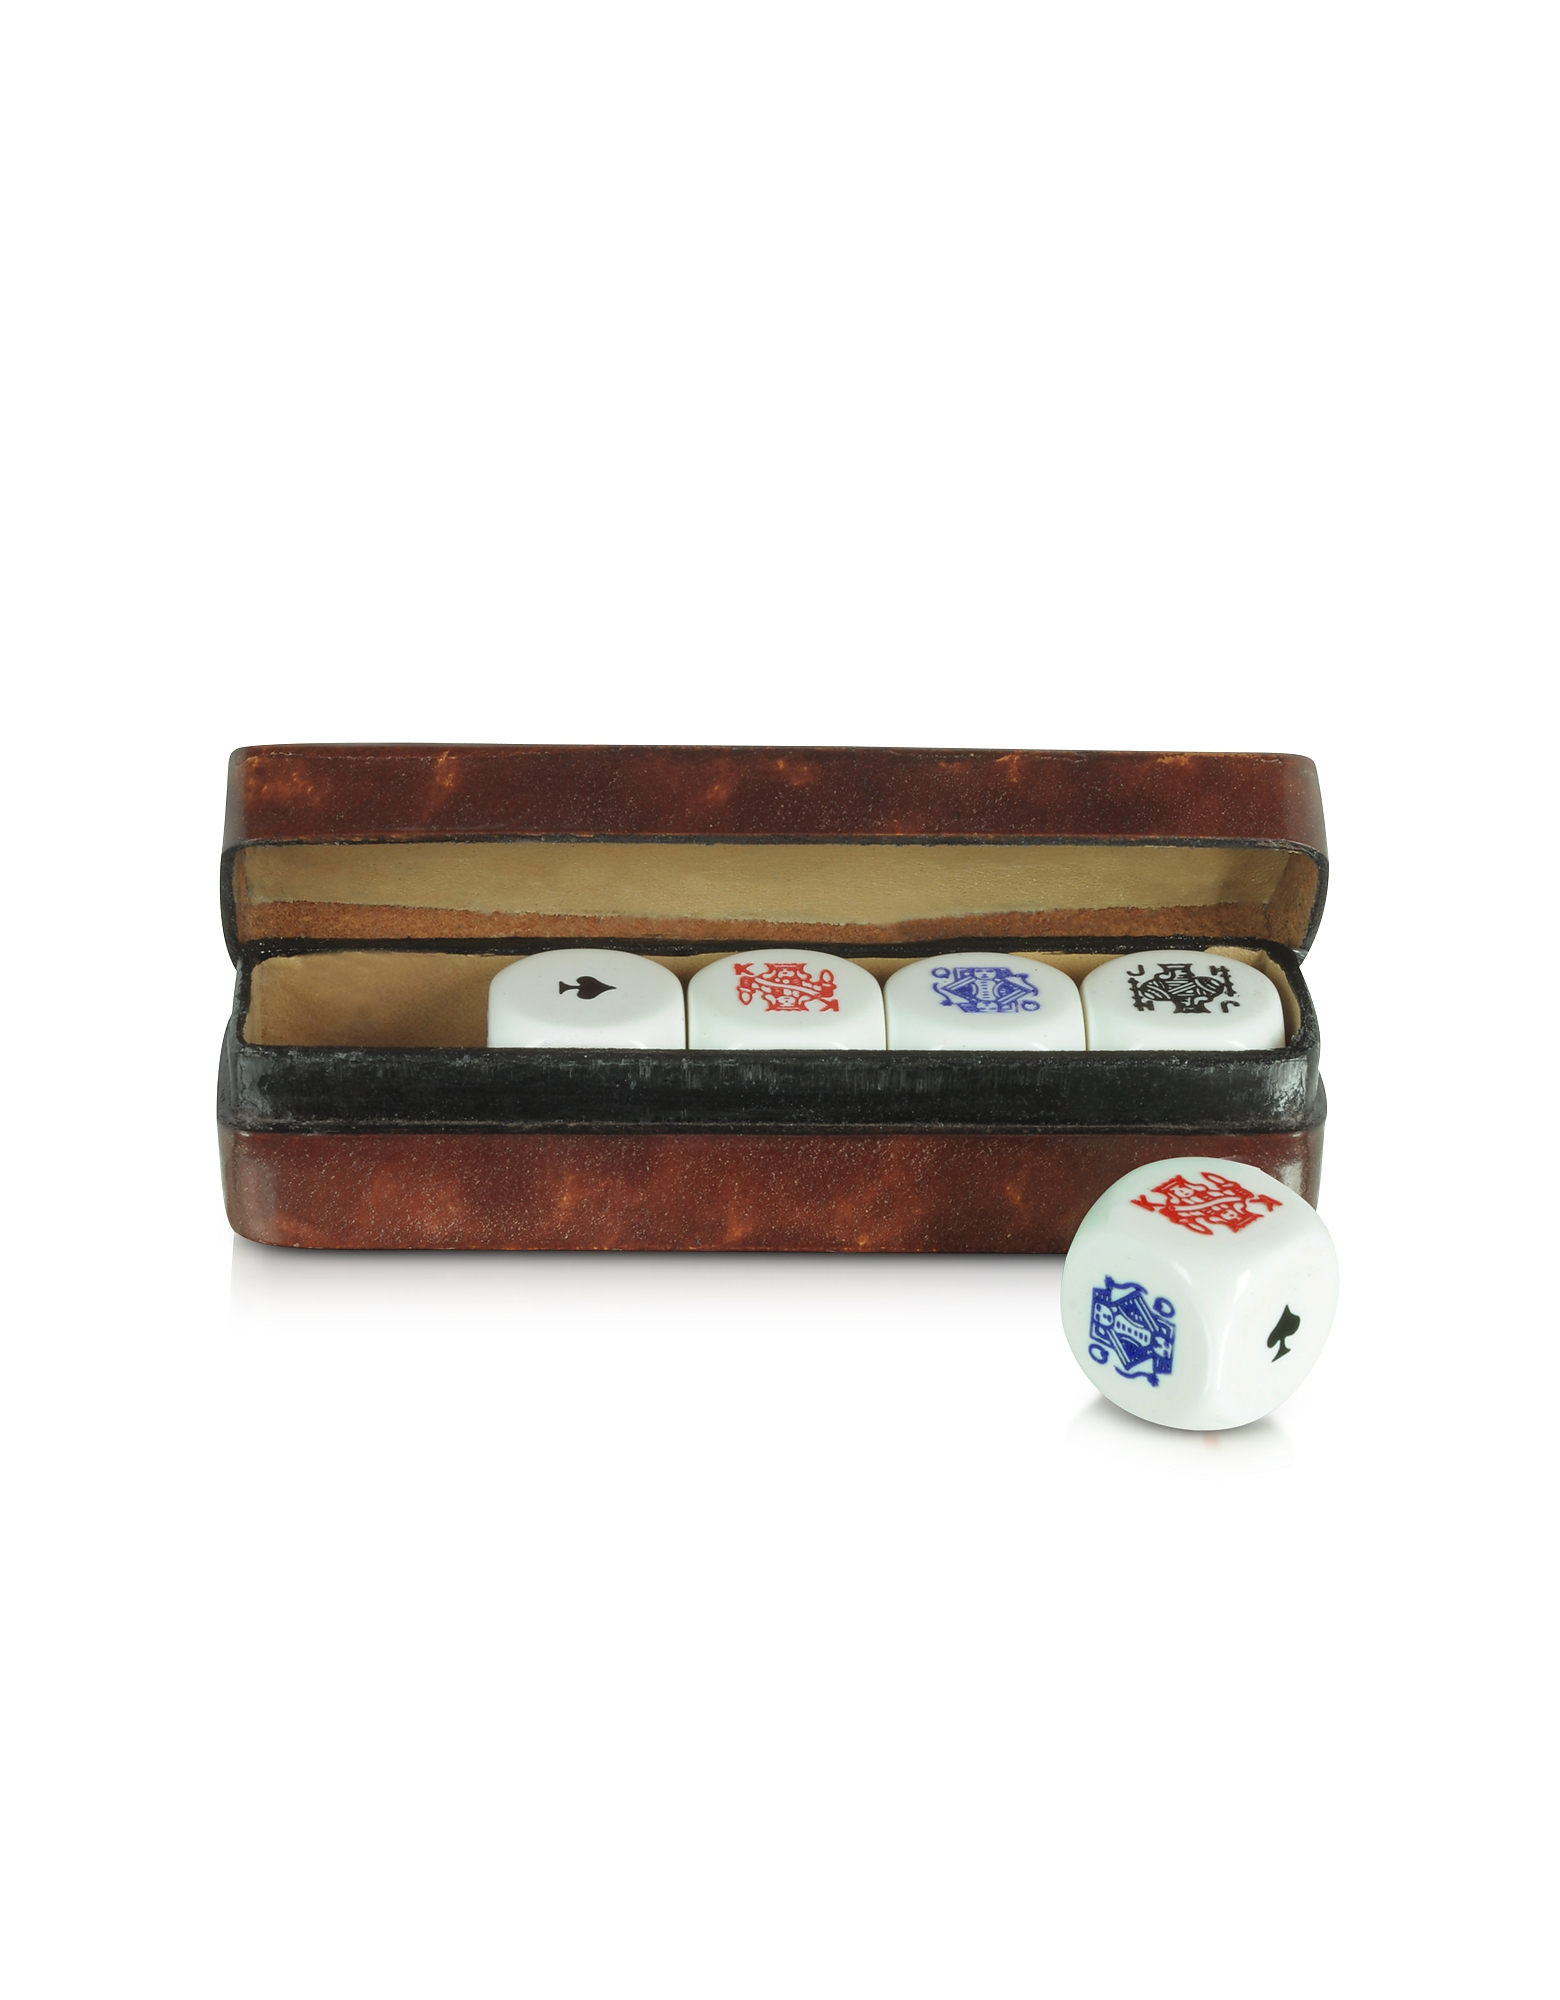 Forzieri Small Leather Goods, Poker Dice with Leather Carrying Case